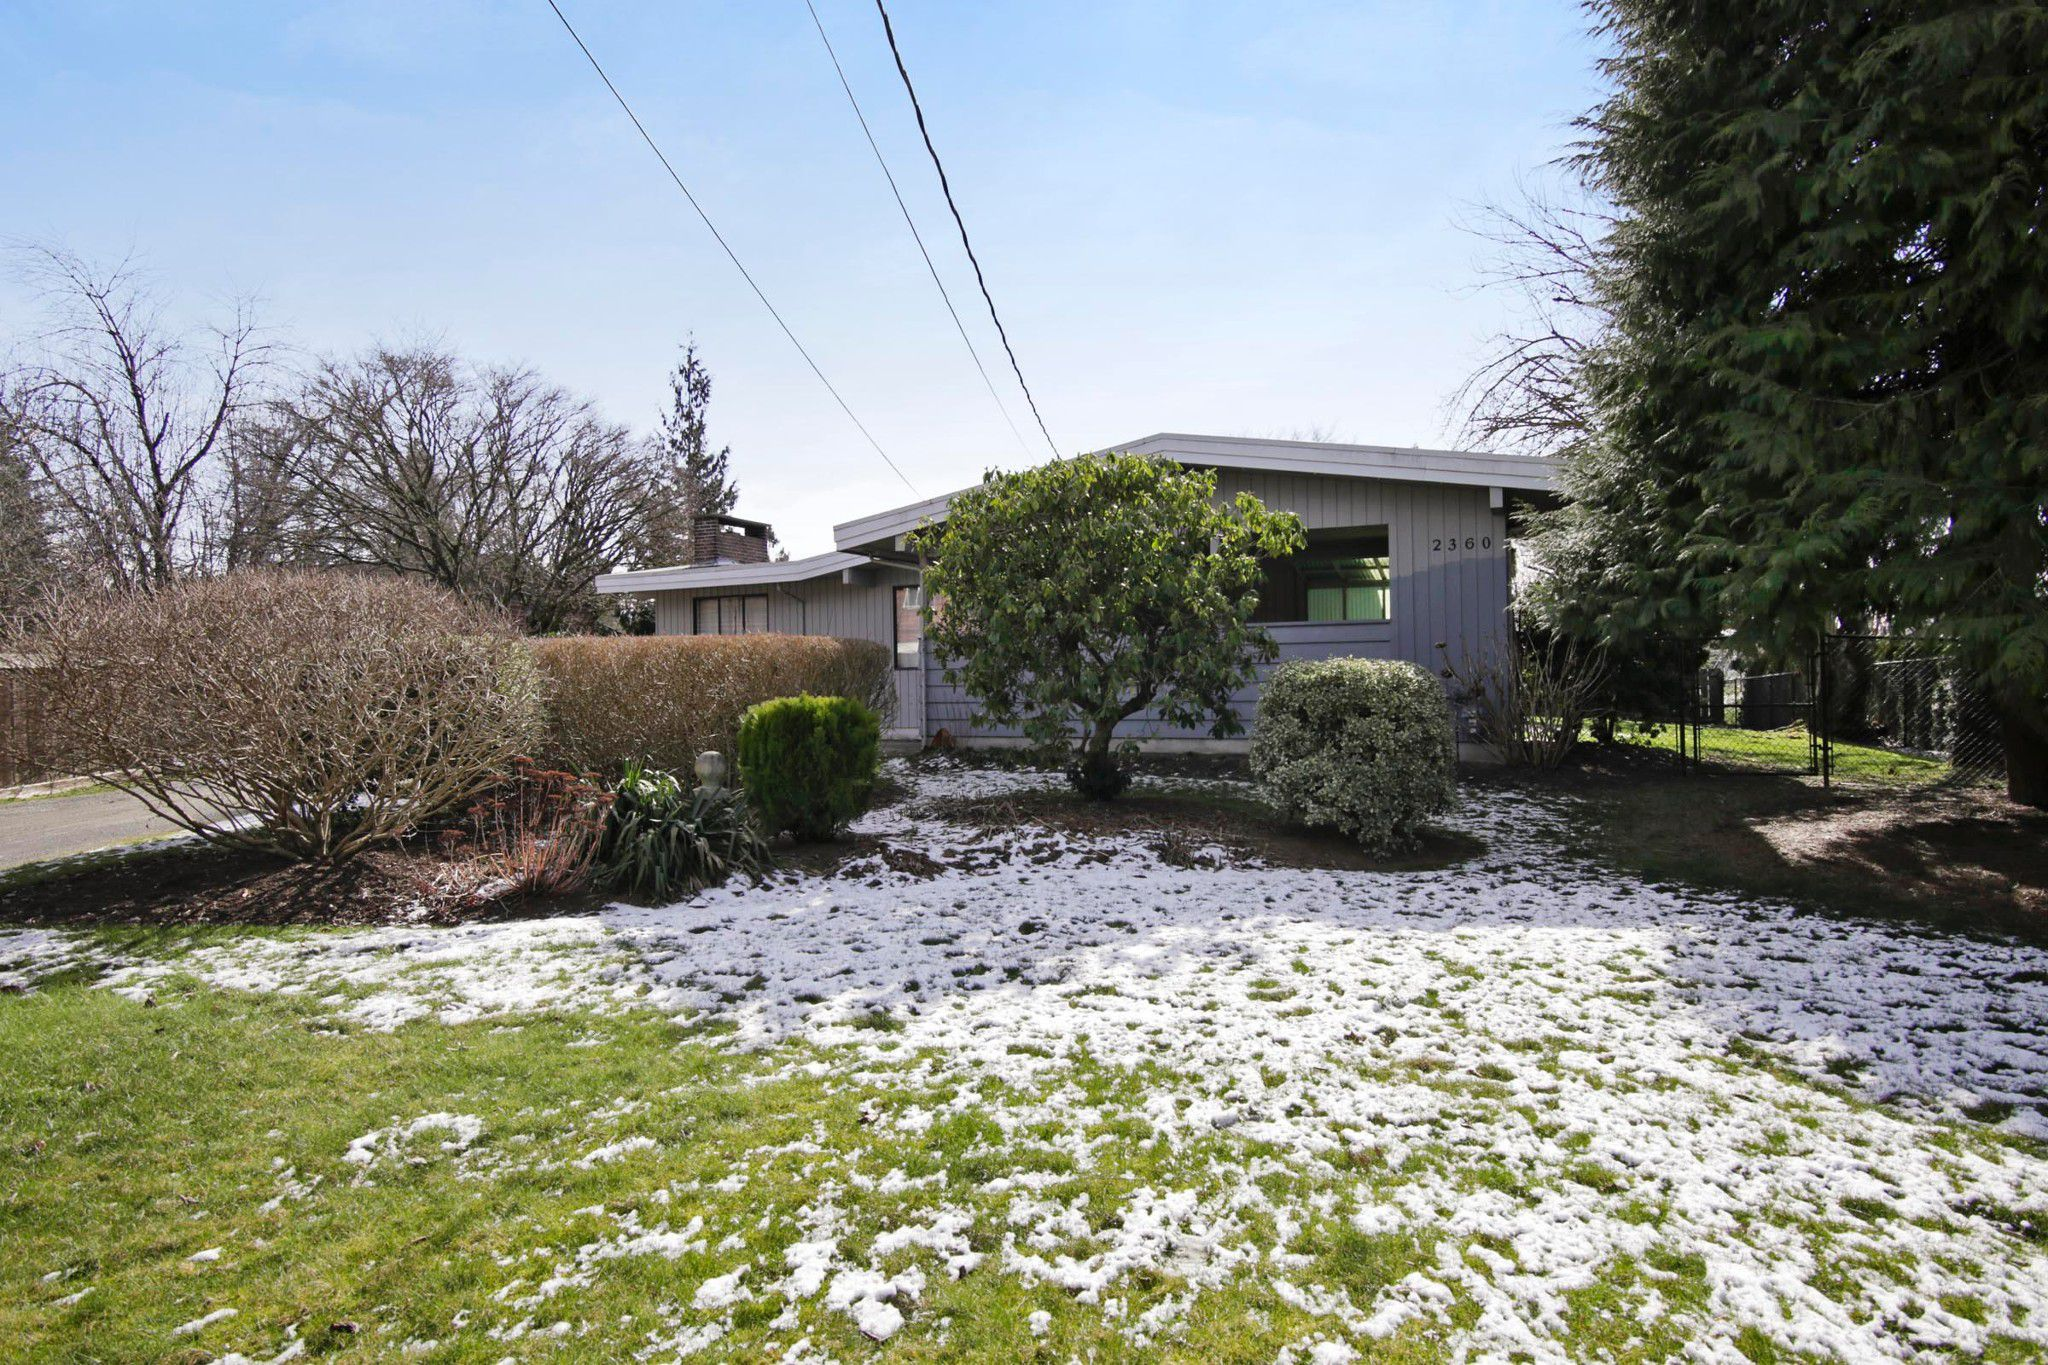 Main Photo: 2360 CRESCENT Way in Abbotsford: Central Abbotsford House for sale : MLS®# R2242278